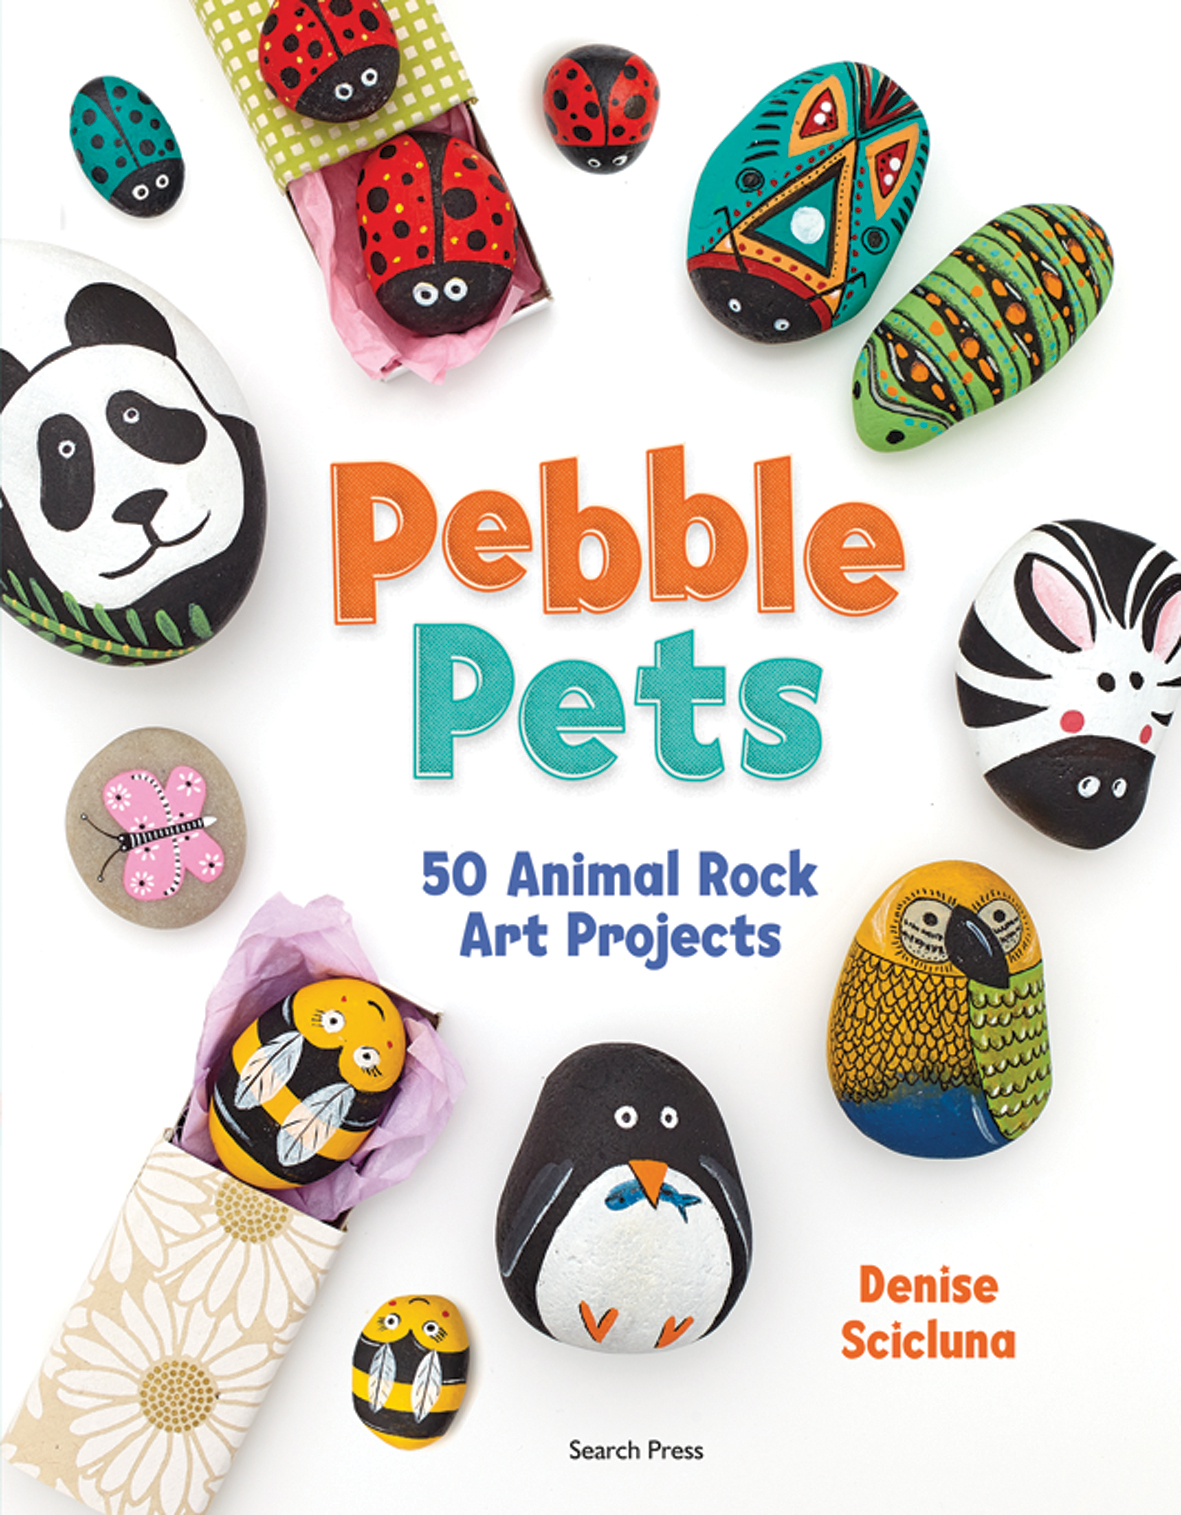 Search Press | Pebble Pets by Denise Scicluna